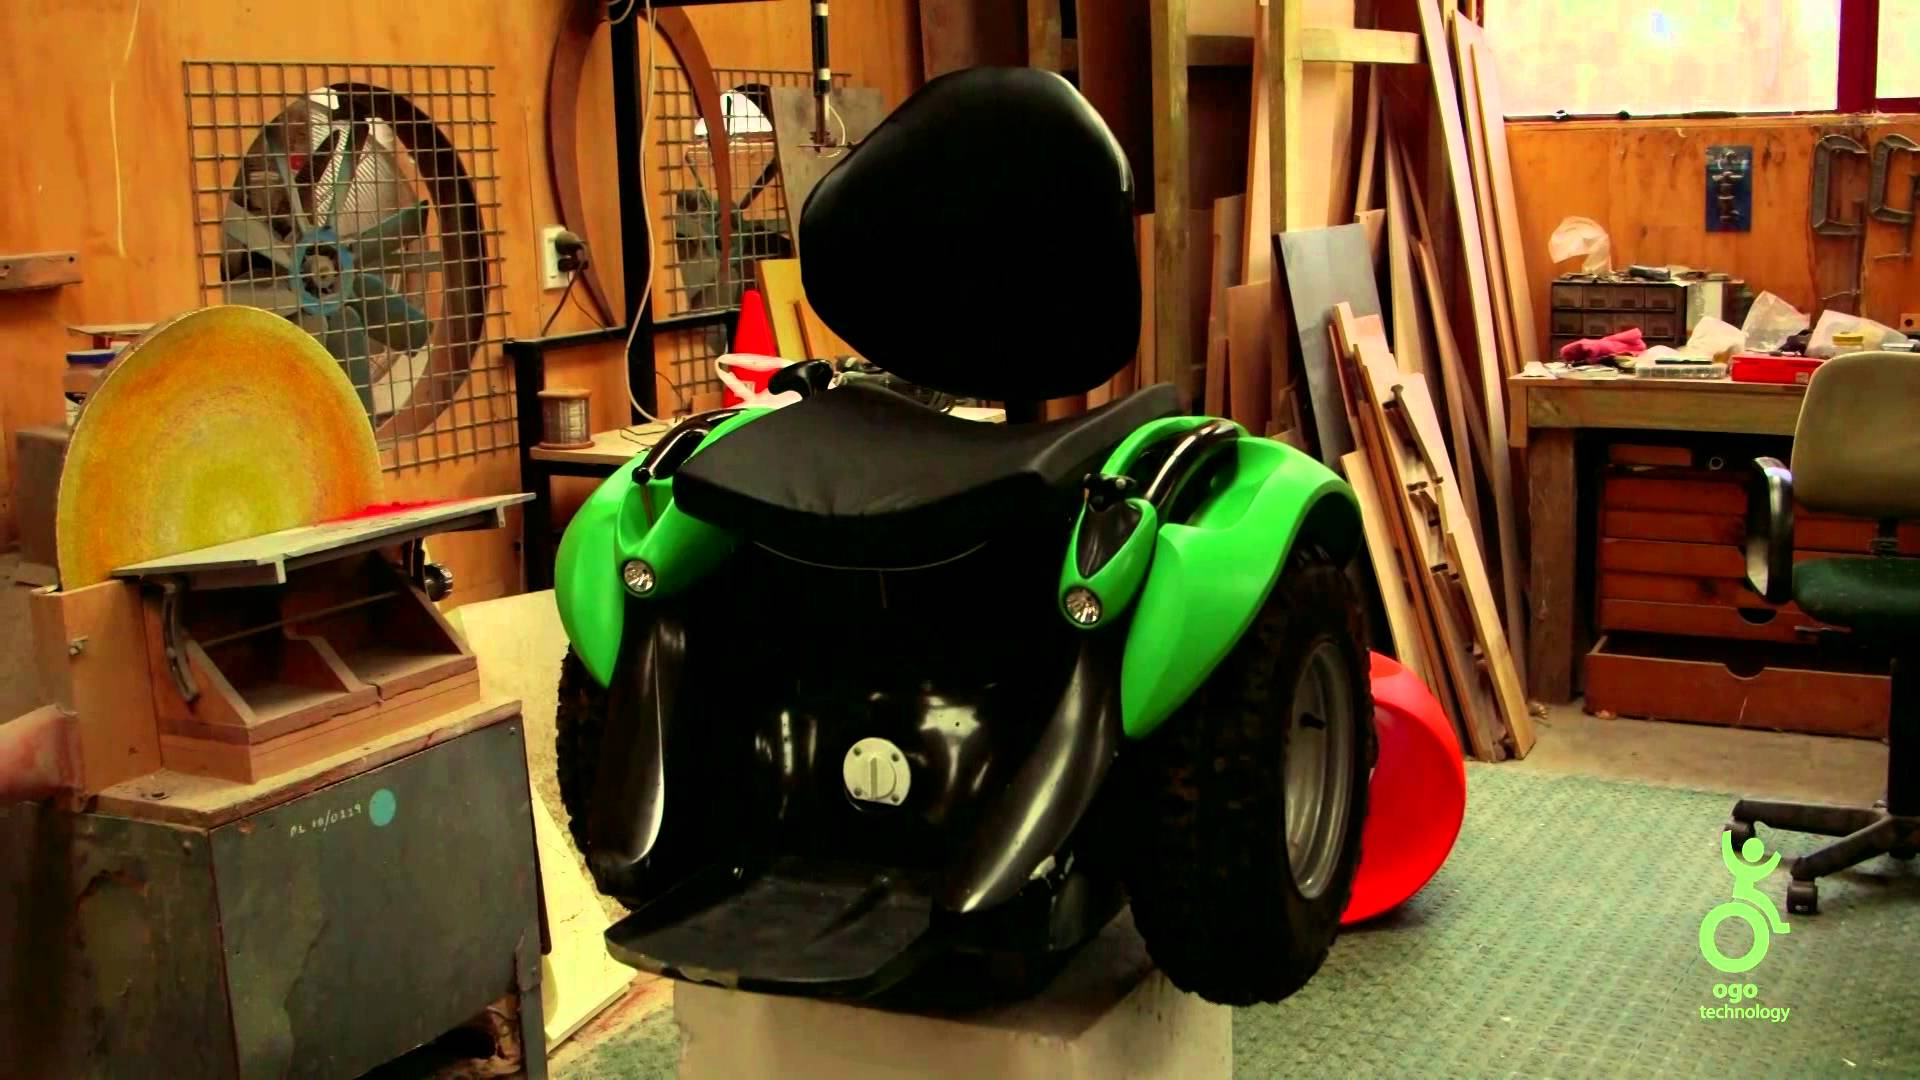 A segway type wheelchair which is hands-free